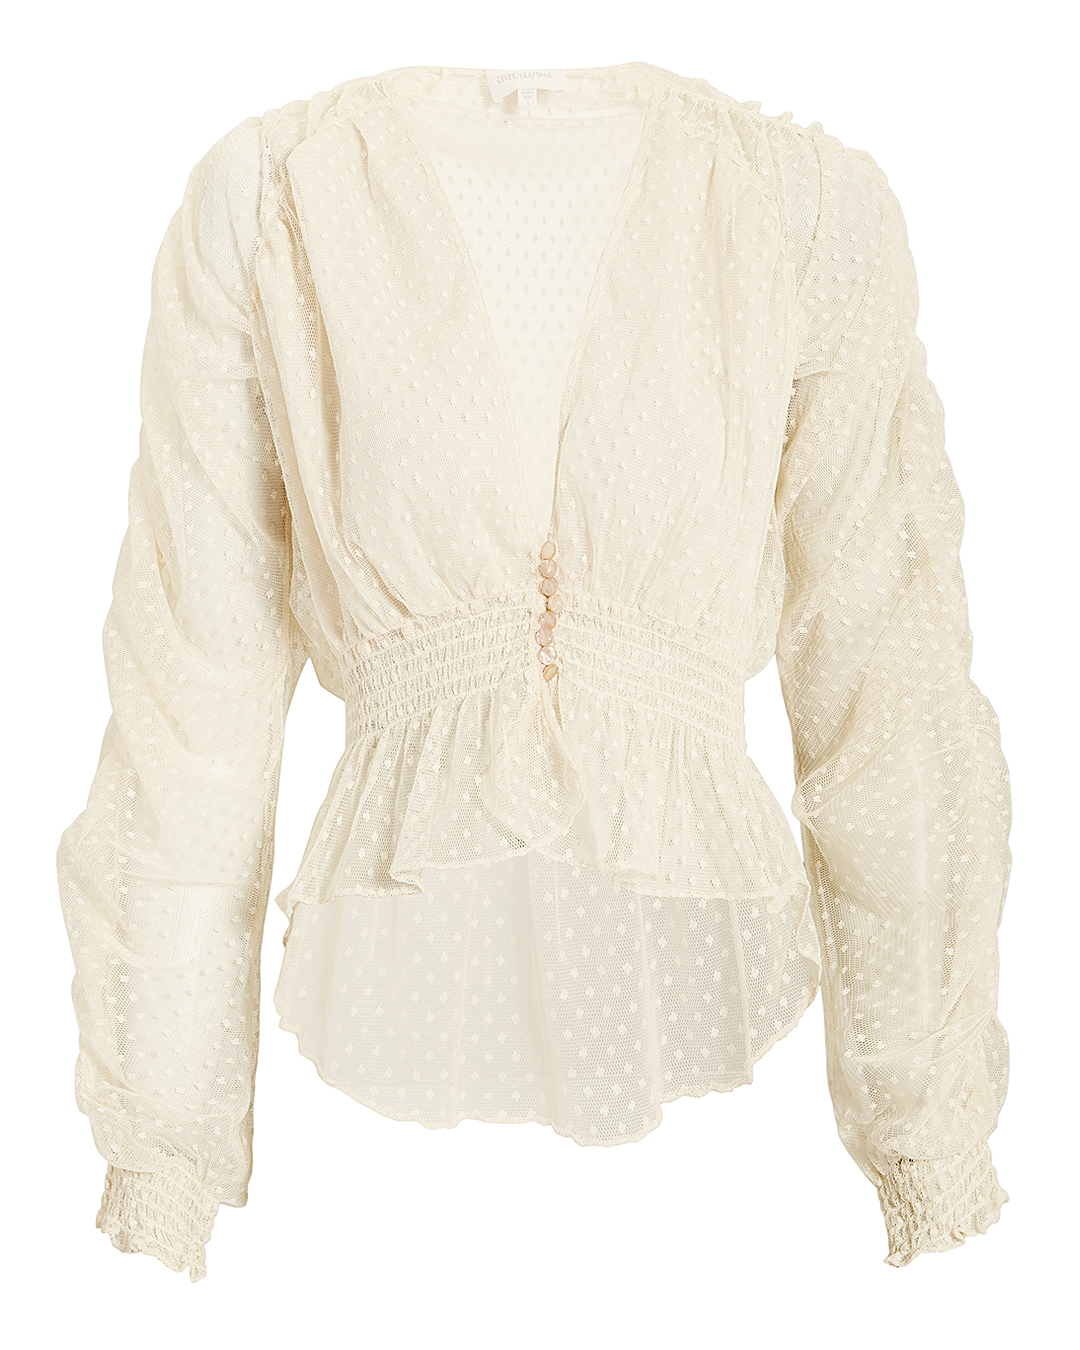 DEVINE HERITAGE Lace Ruched Top